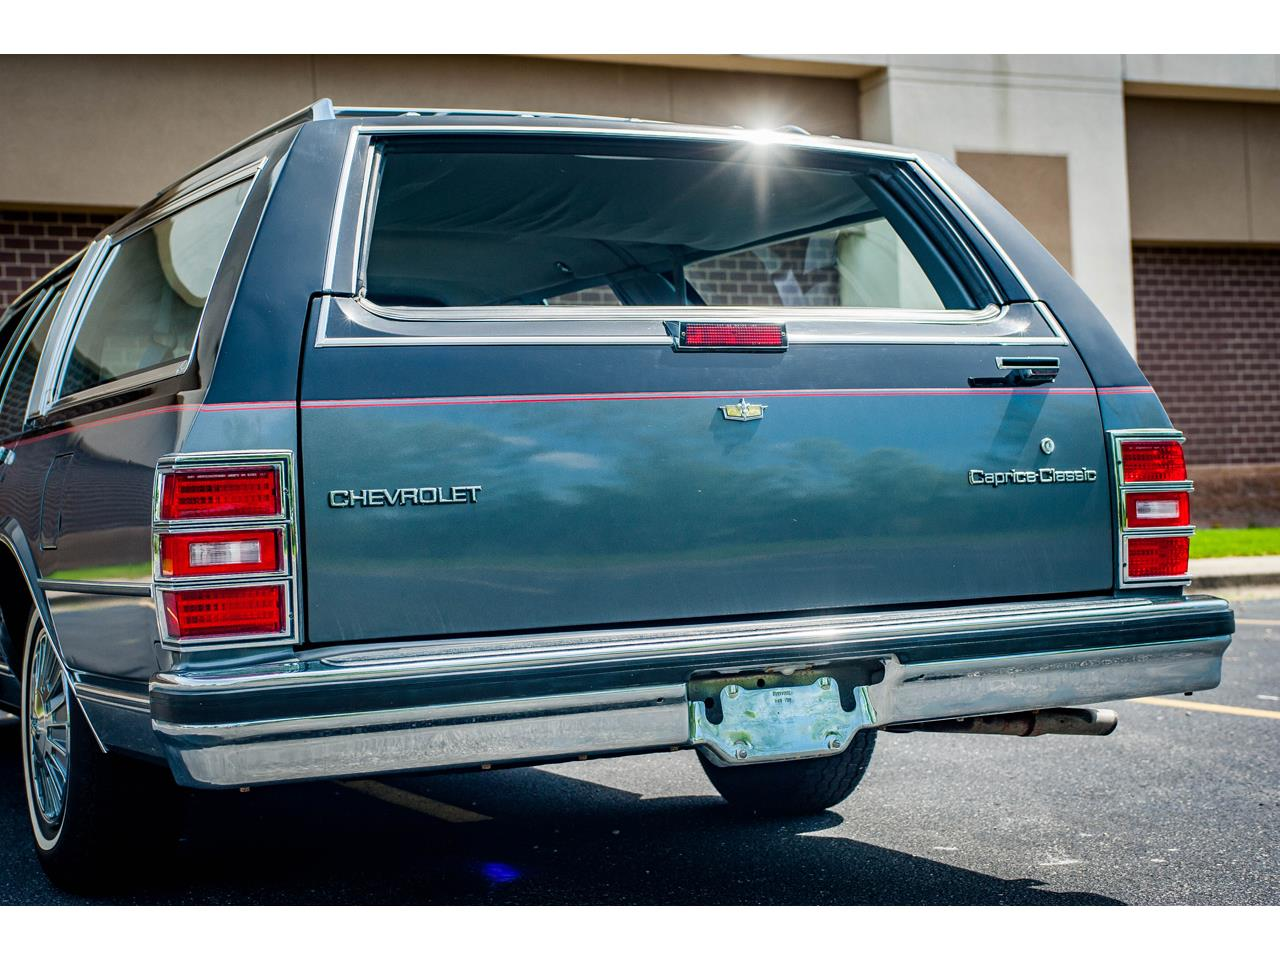 Large Picture of 1989 Chevrolet Caprice - $17,995.00 Offered by Gateway Classic Cars - St. Louis - QB9K